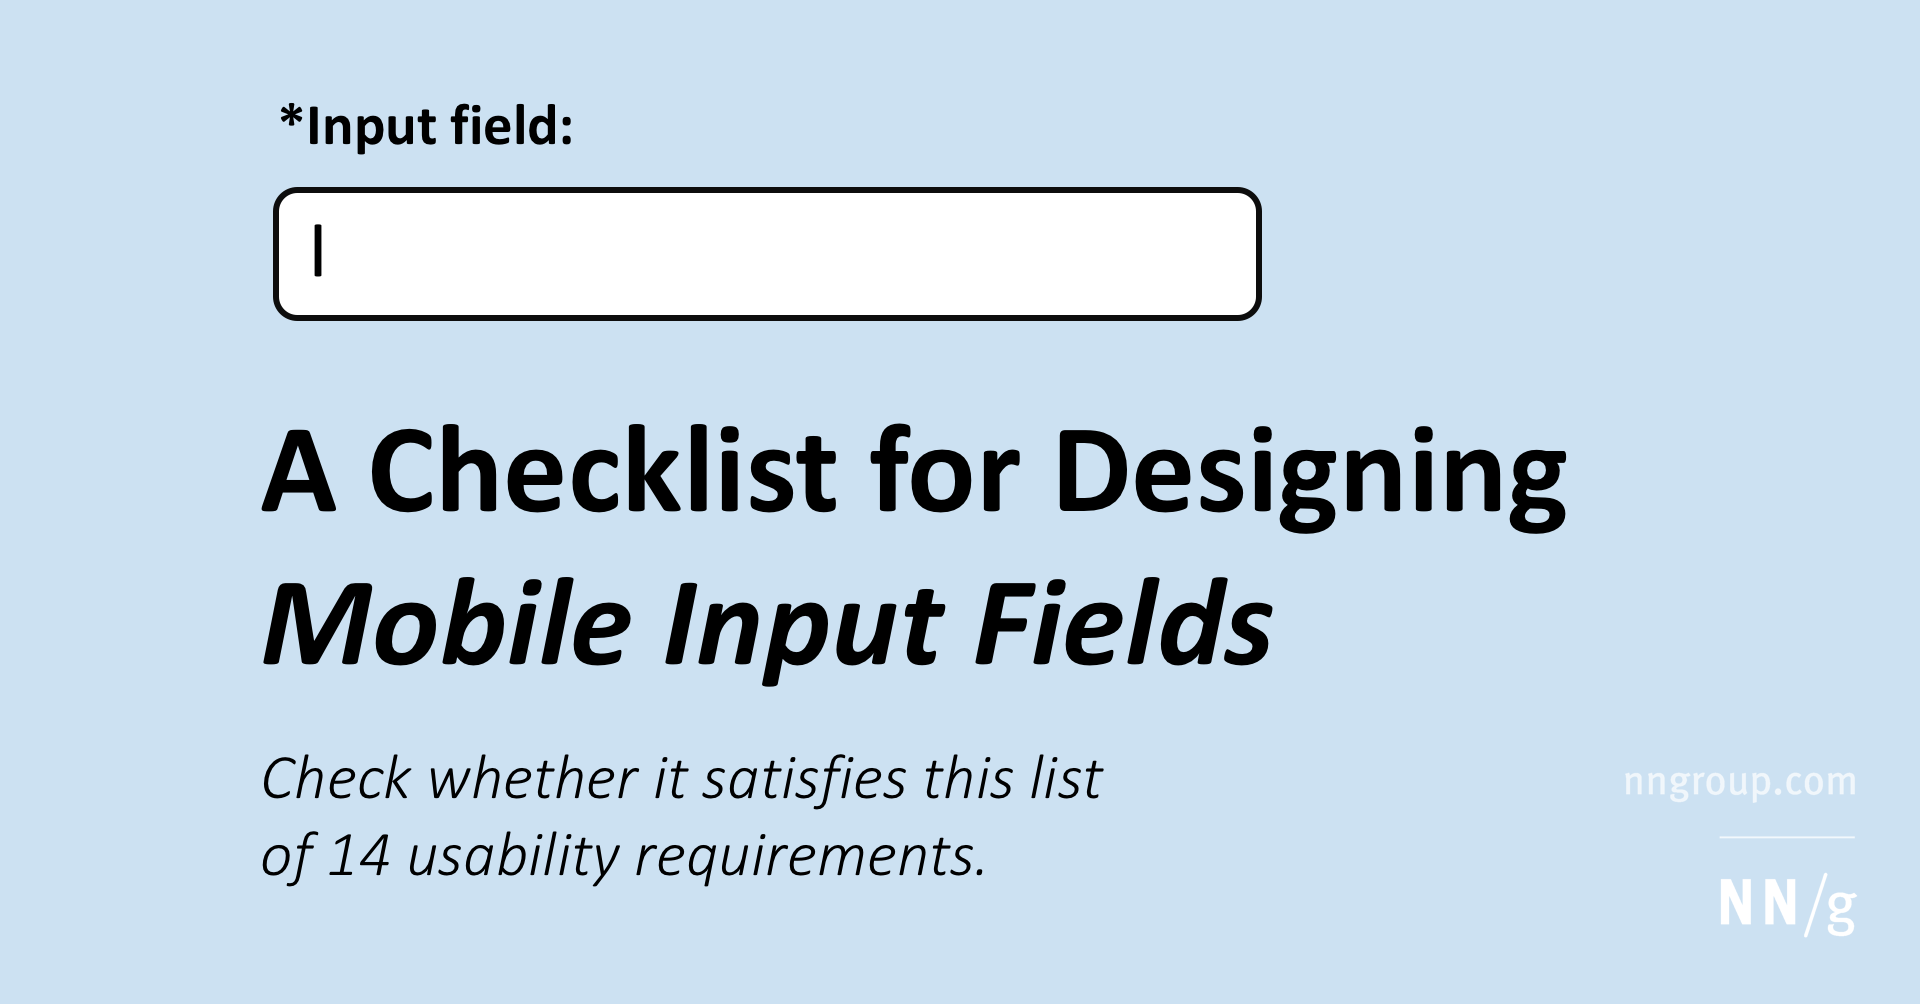 A Checklist for Designing Mobile Input Fields